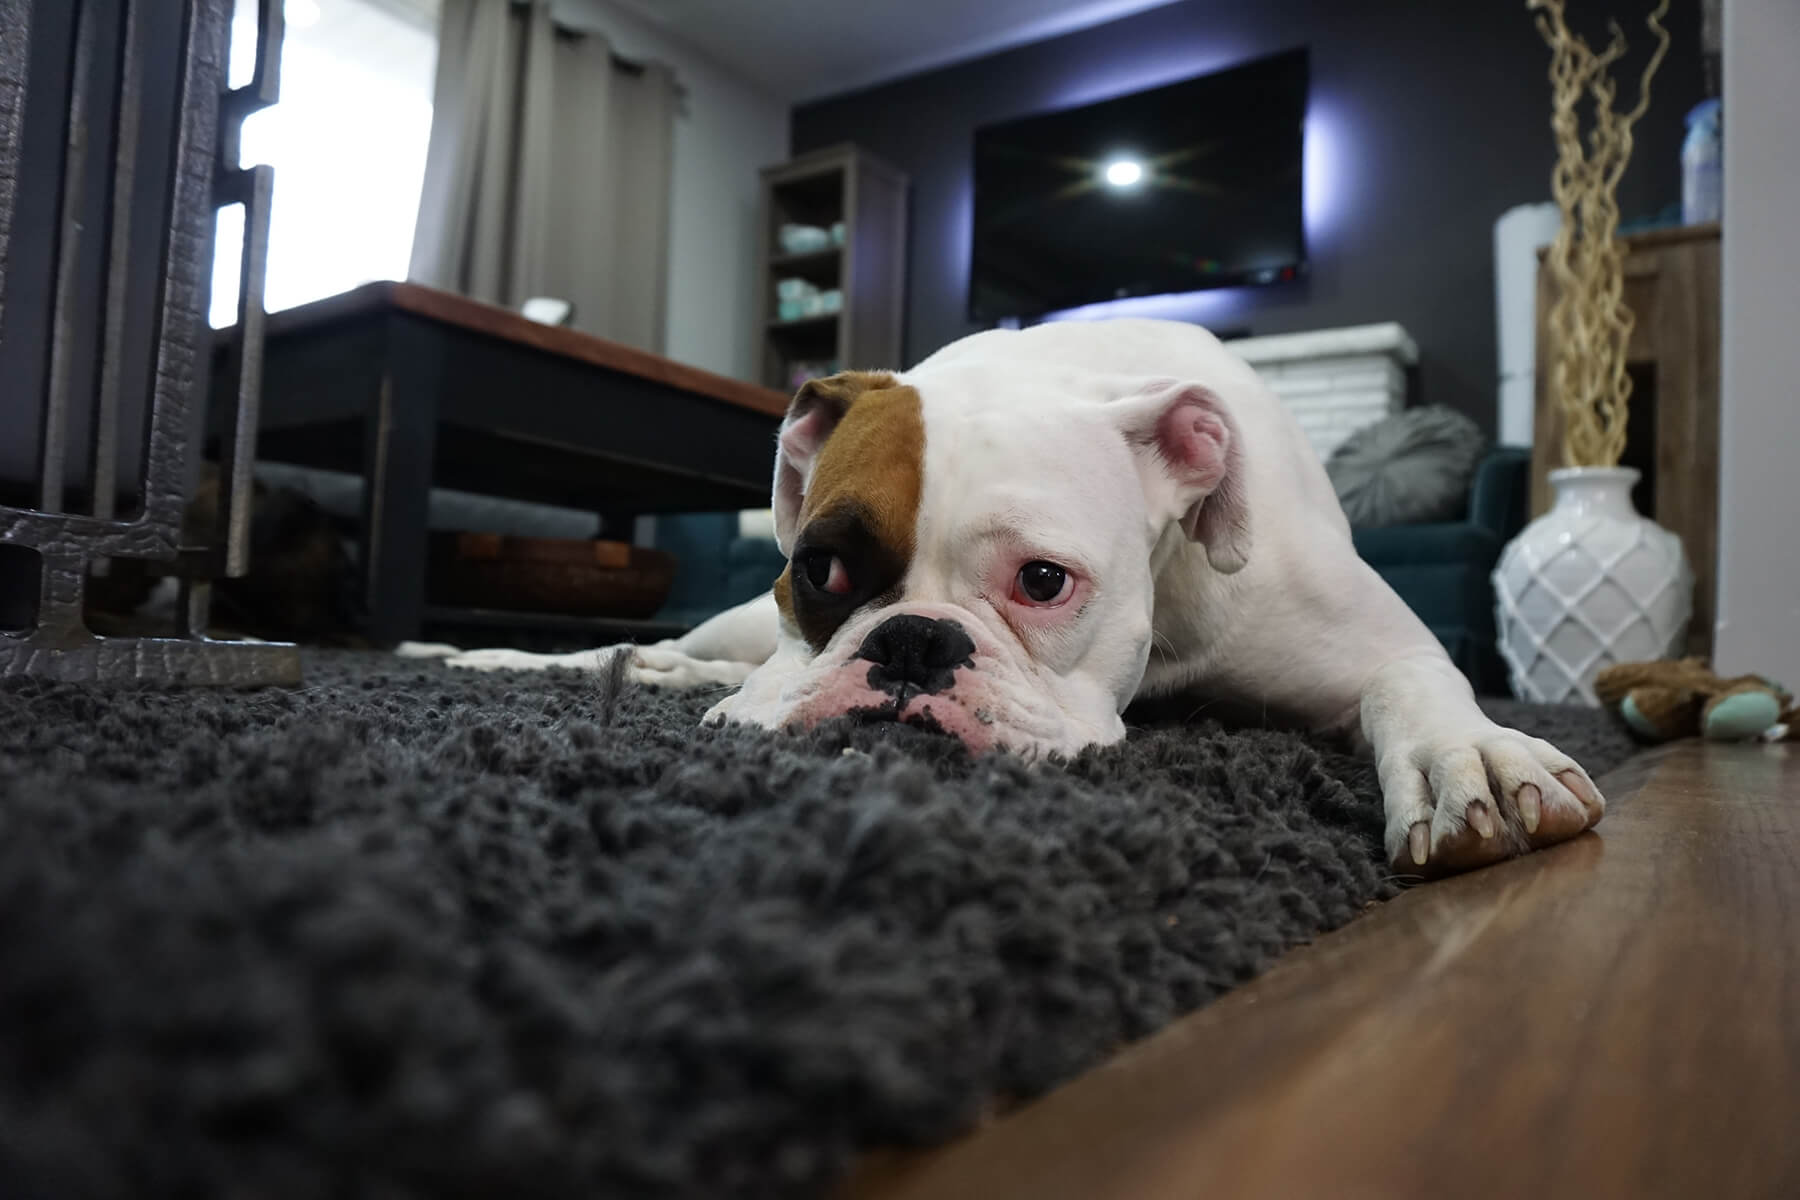 Dog laying on rug looking sad